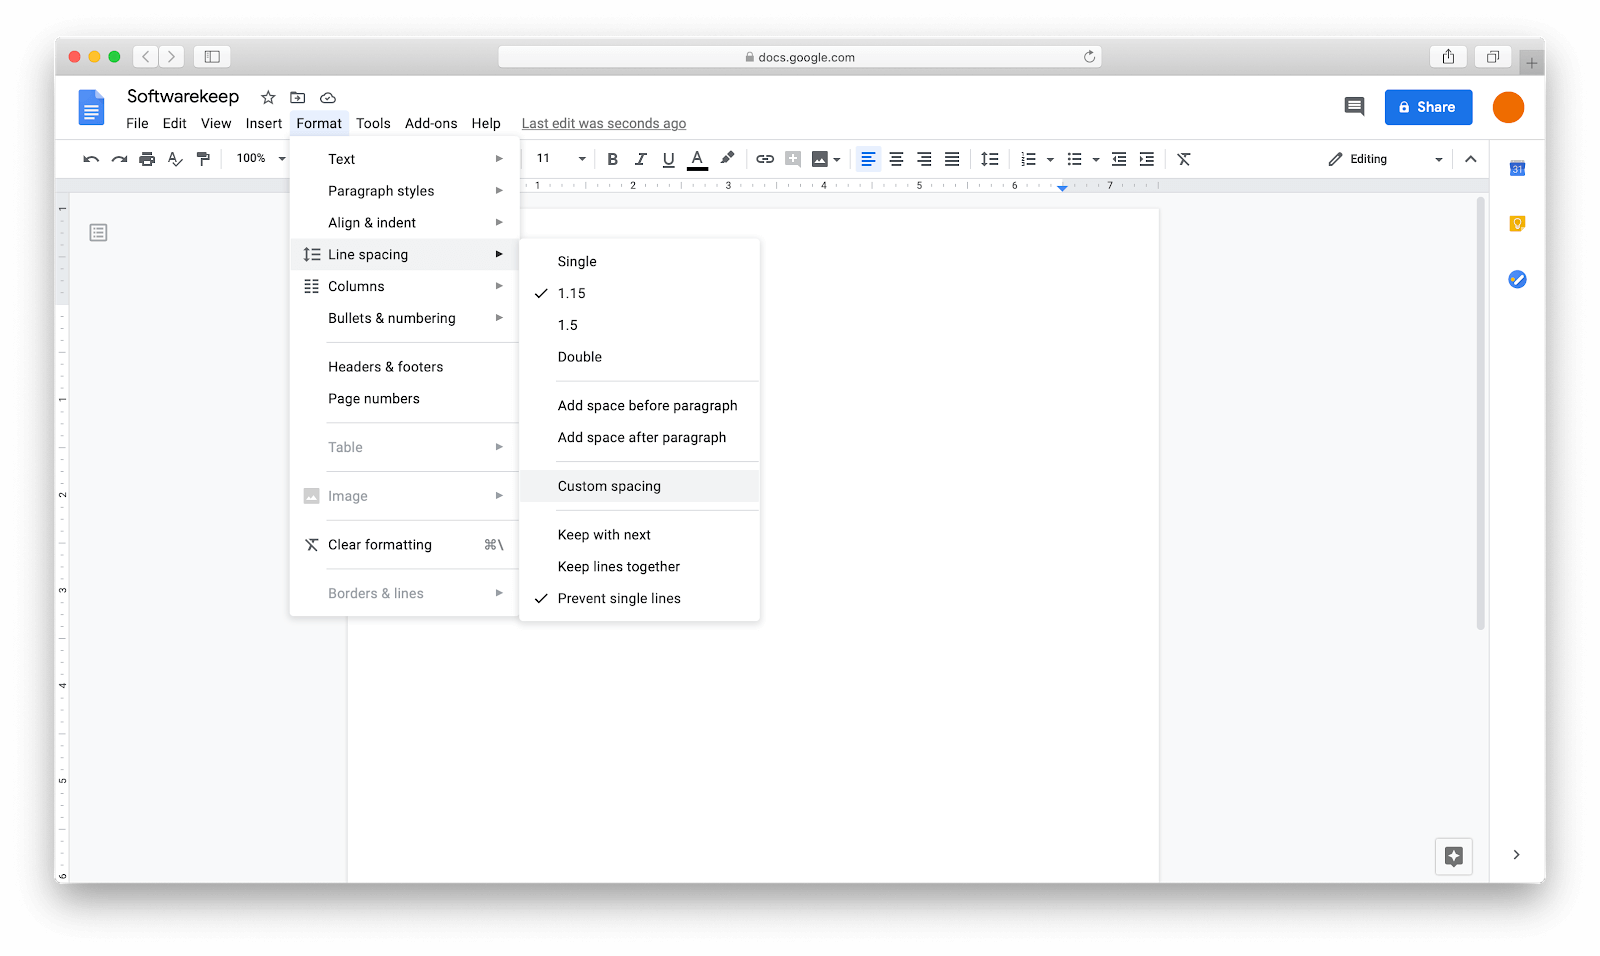 Using custom spacing to delete a page in Google docs